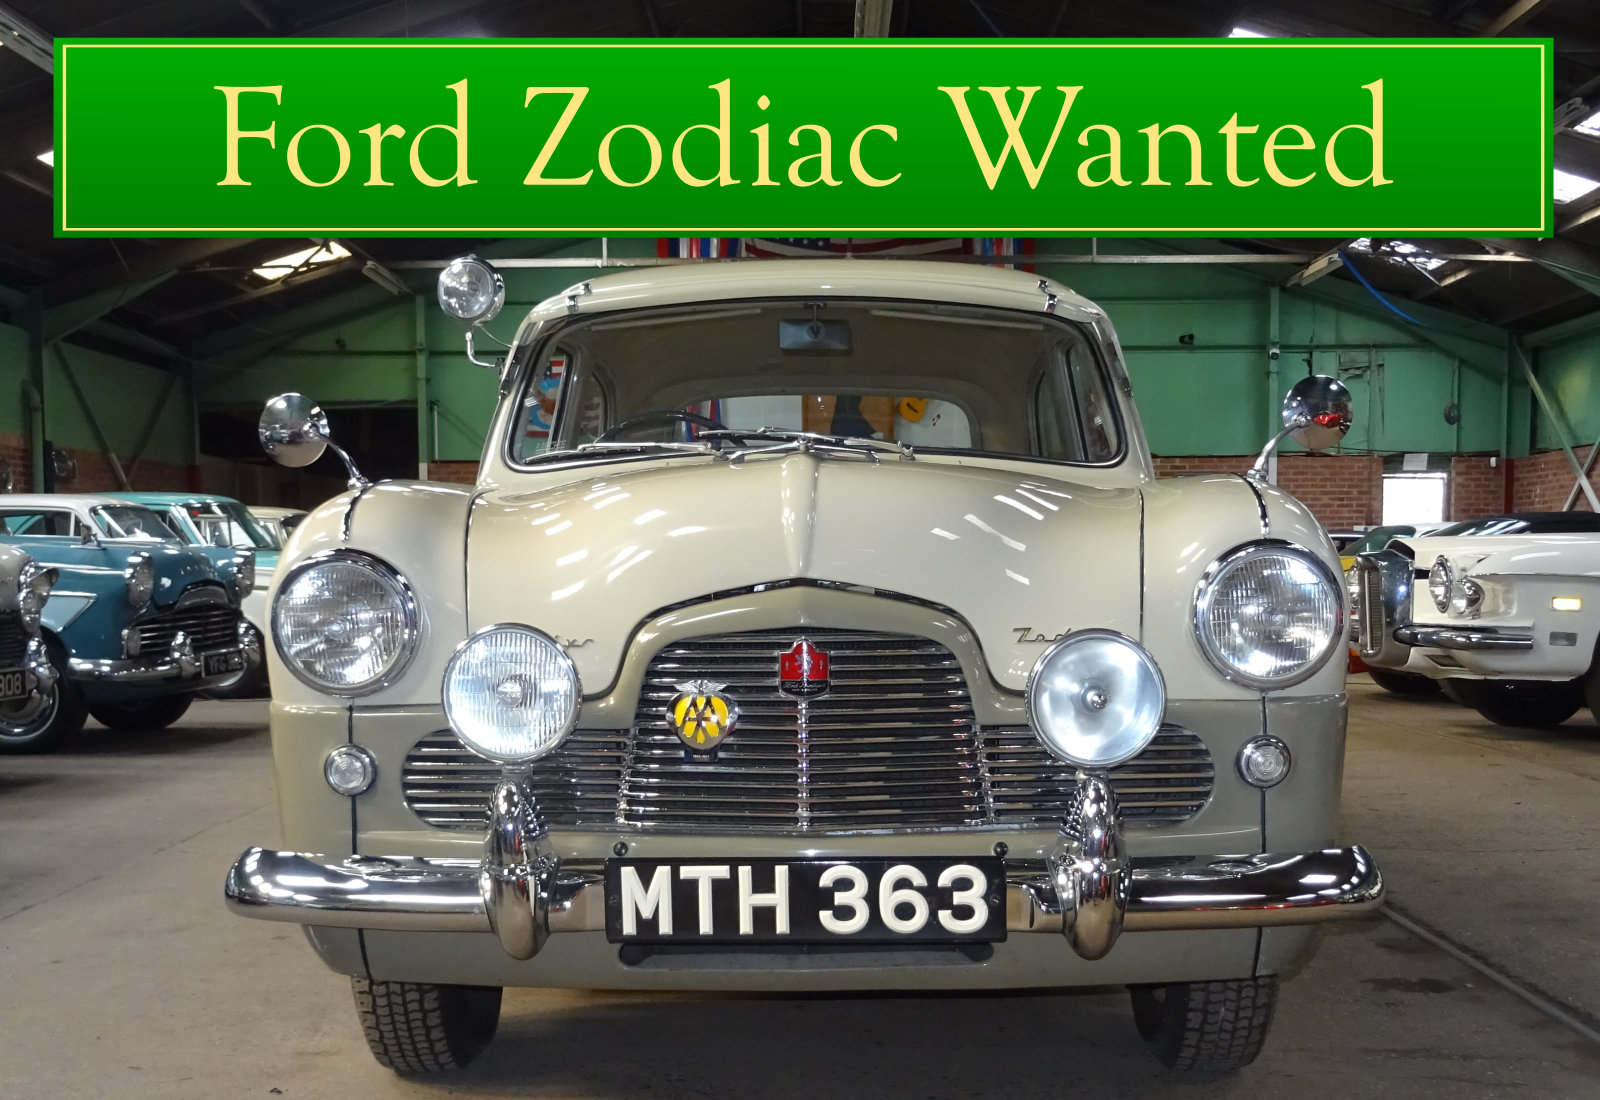 FORD ZODIAC MK1 WANTED, CLASSIC CARS WANTED, INSTANT PAYMENT Wanted (picture 1 of 6)